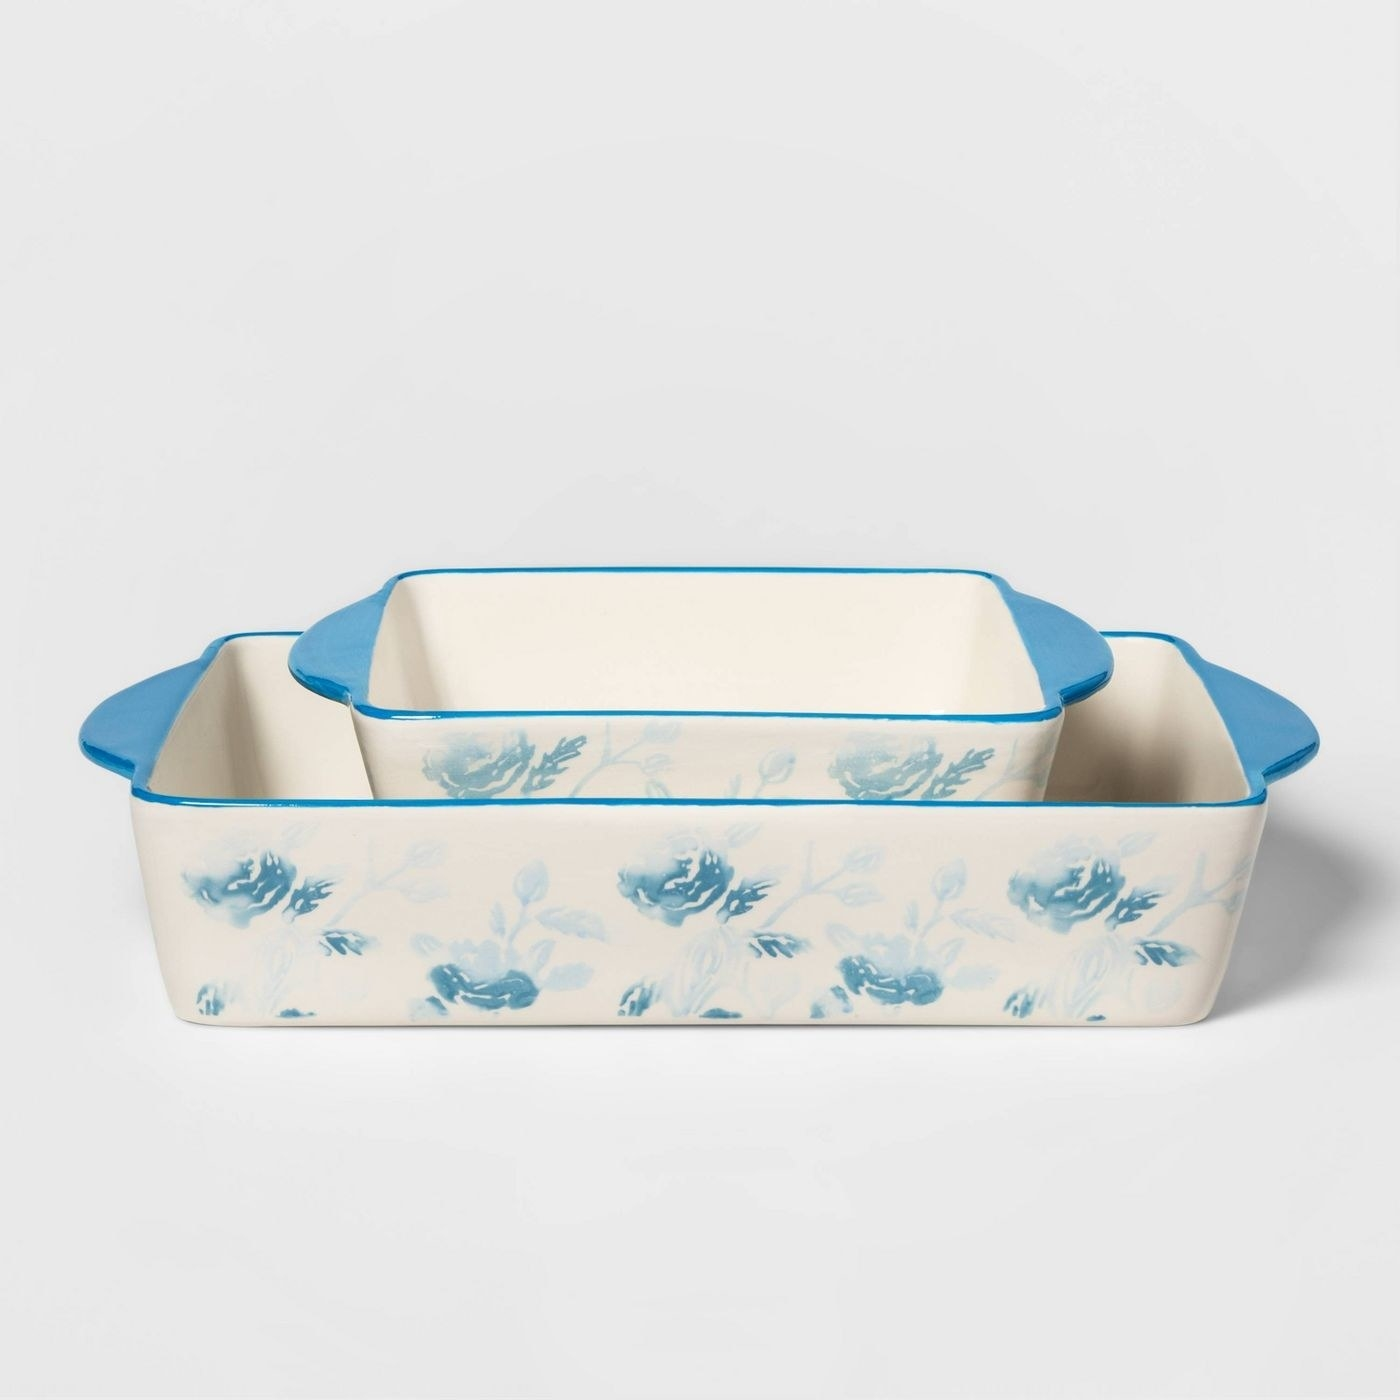 a ceramic casserole dish with light blue floral designs on it